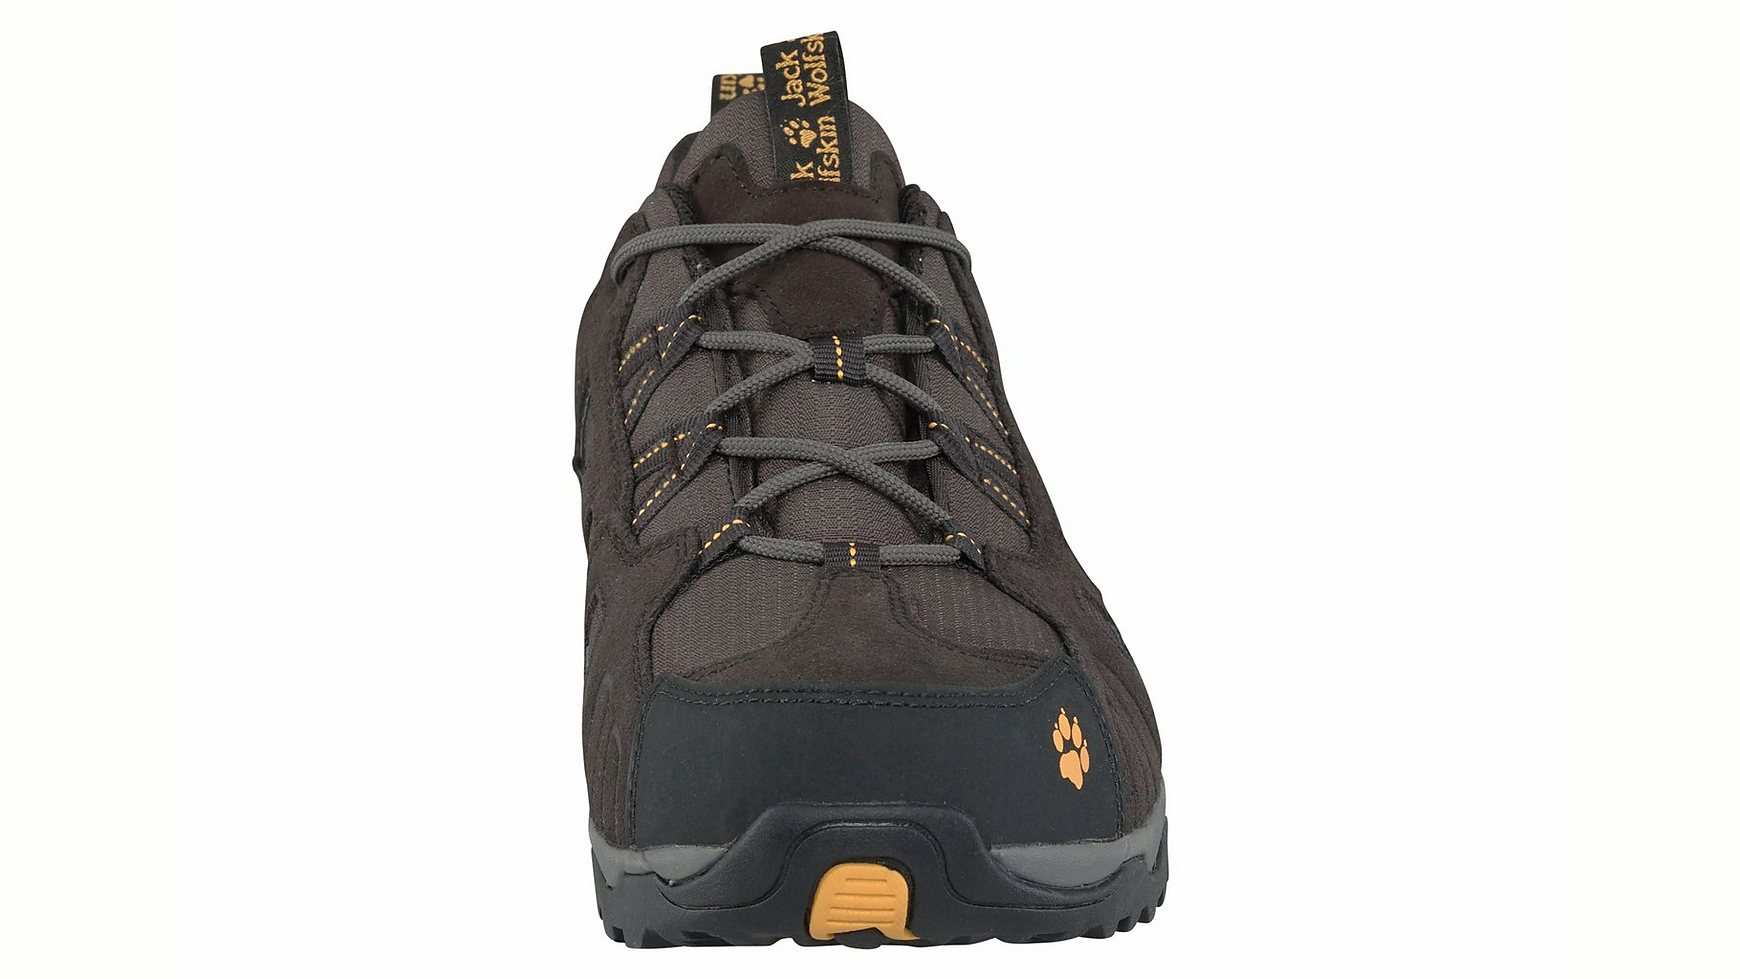 Jack-Wolfskin-Outdoorschuh-Vojo-Hike-Texapore-Men-17990009